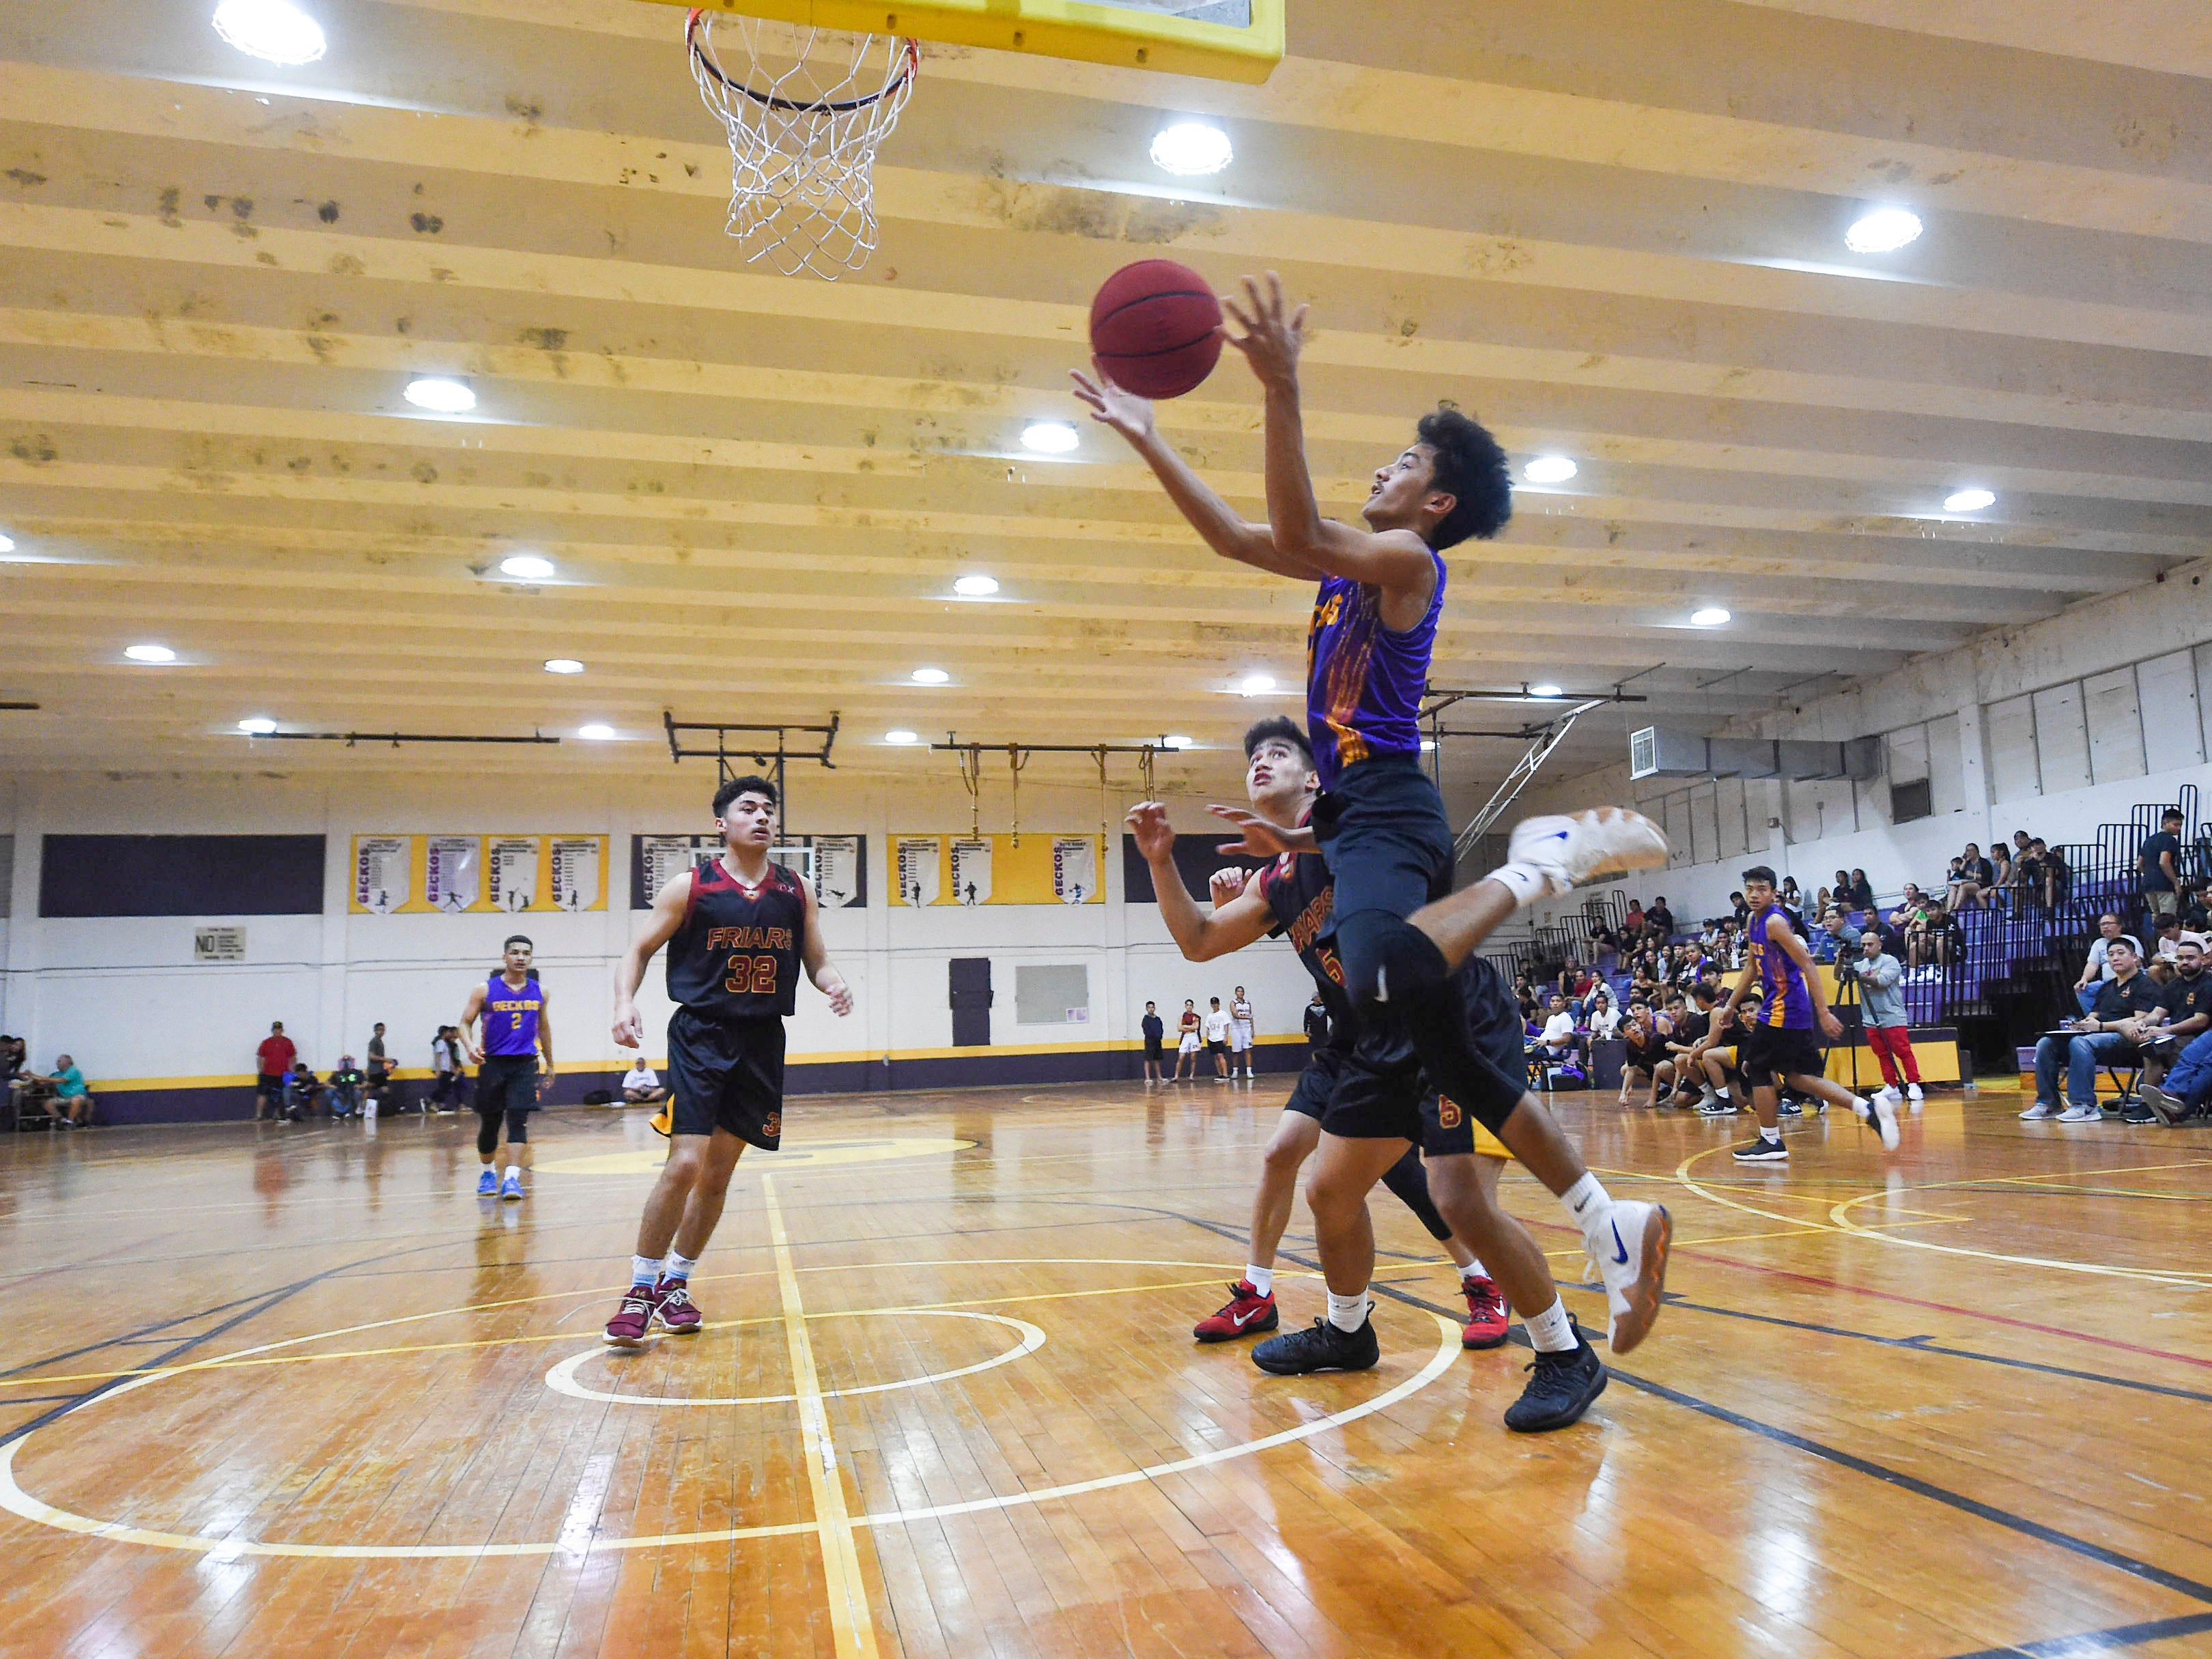 George Washington player William Palomo grabs a rebound against the Friars during their Independent Interscholastic Athletic Association of Guam Boys' Basketball game at the GW High School gym, Jan. 19, 2019. The Friars came through with a 52-69 comeback victory over the Geckos after trailing in the first half.